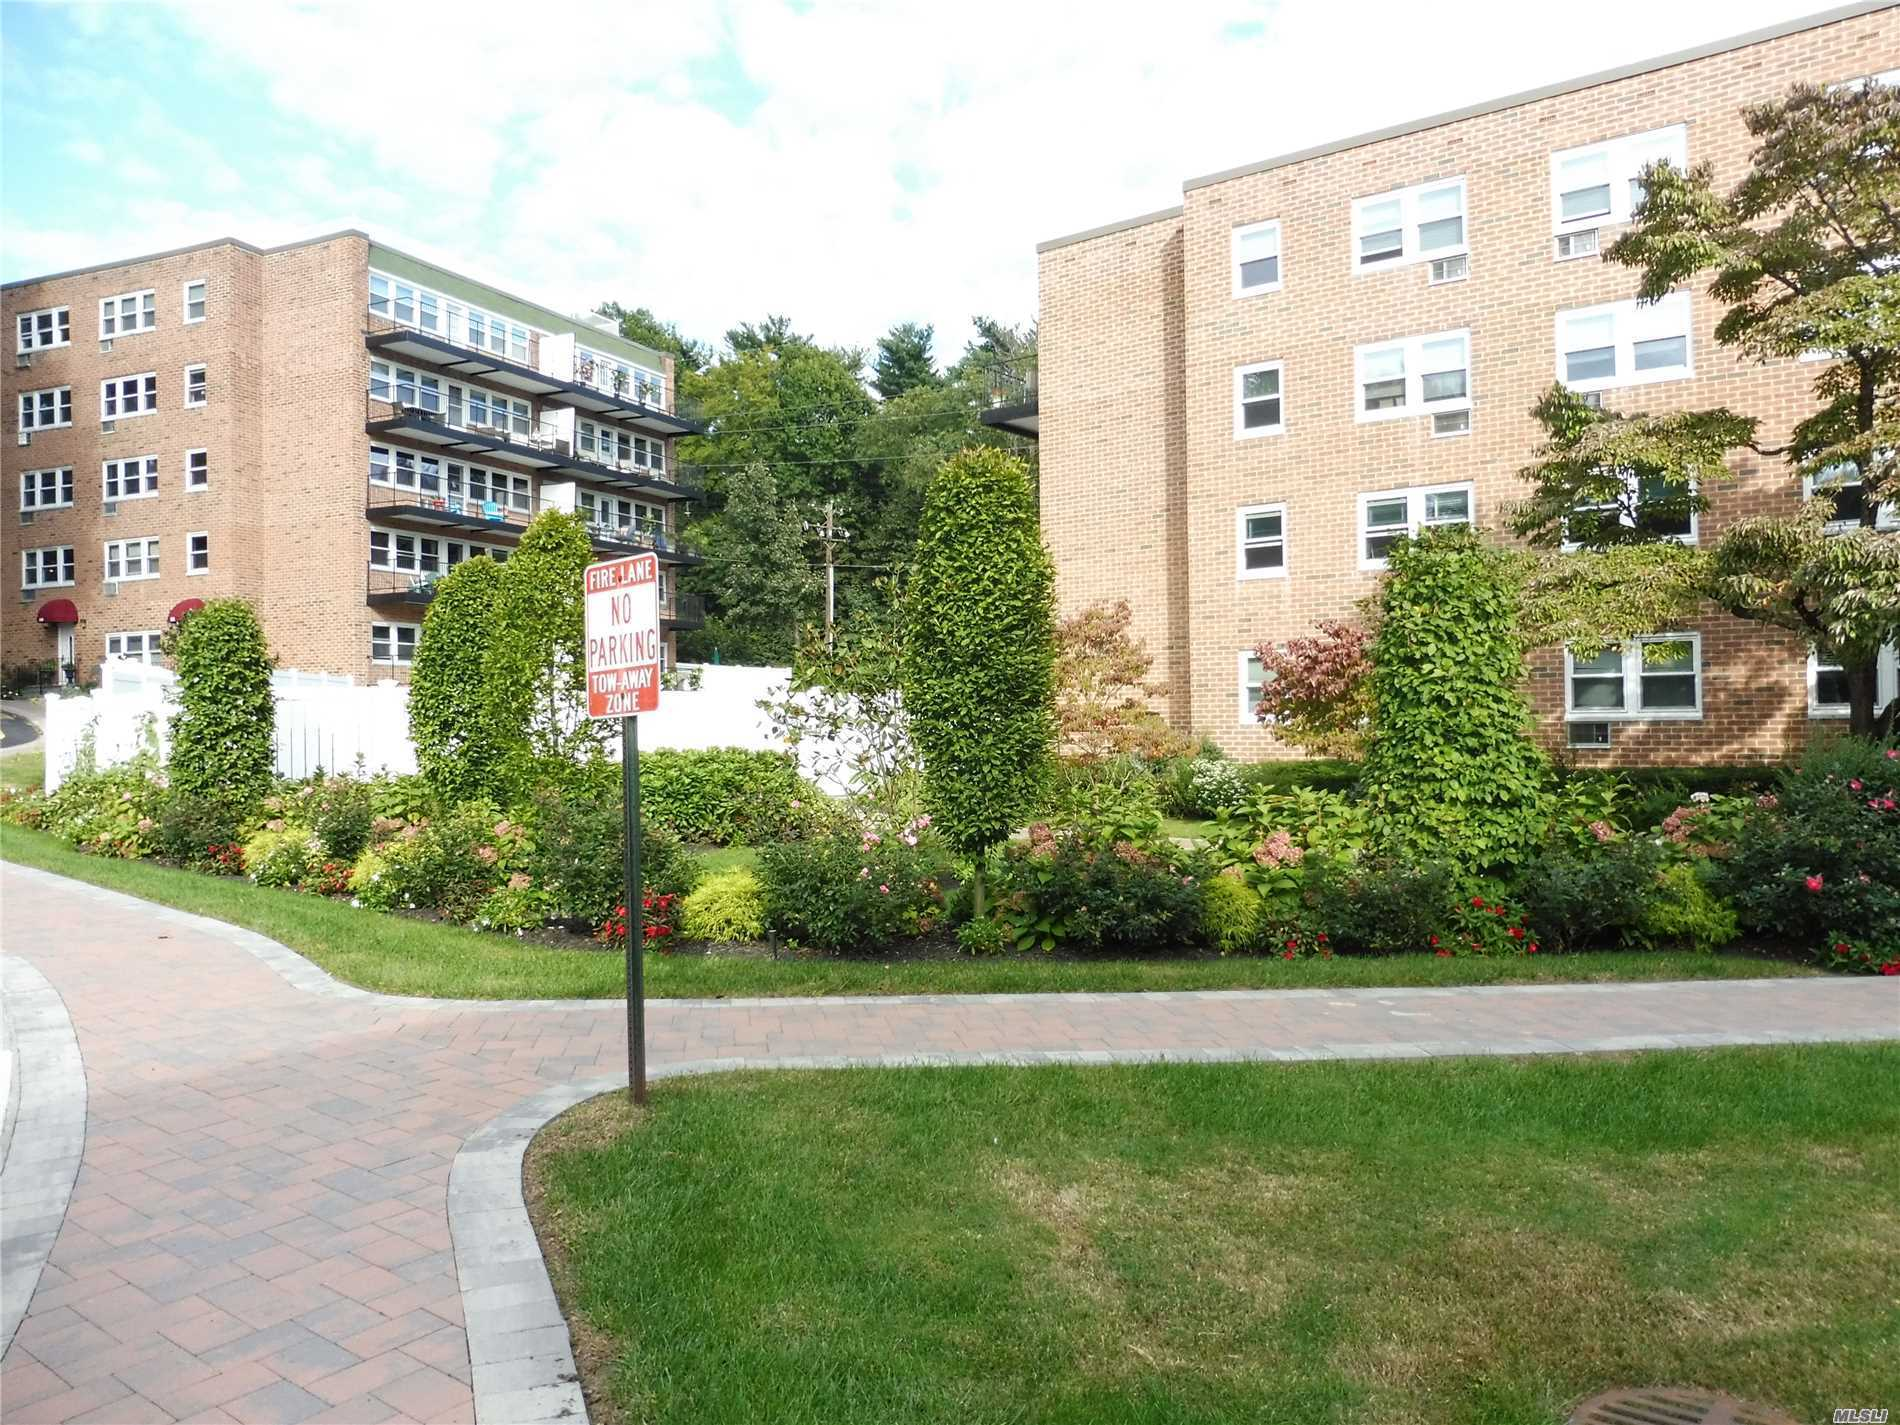 Great 1 Br On 3rd Fl In Desirable Glen Pearsall Community. Plenty Of Closets. Laundry On Same Floor. Beautifully Maintained Complex With Pretty Enclosed Ig Pool. Opportunity To Purchase On The North Shore, Close To Lirr, Shopping And Restaurants, Golf And Beaches. No Pets Allowed. Taxes, Heat And Water Included In Maintenance. Buyer Pays Flip Tax @$9/Share. 360 Shares. No Pets Allowed.